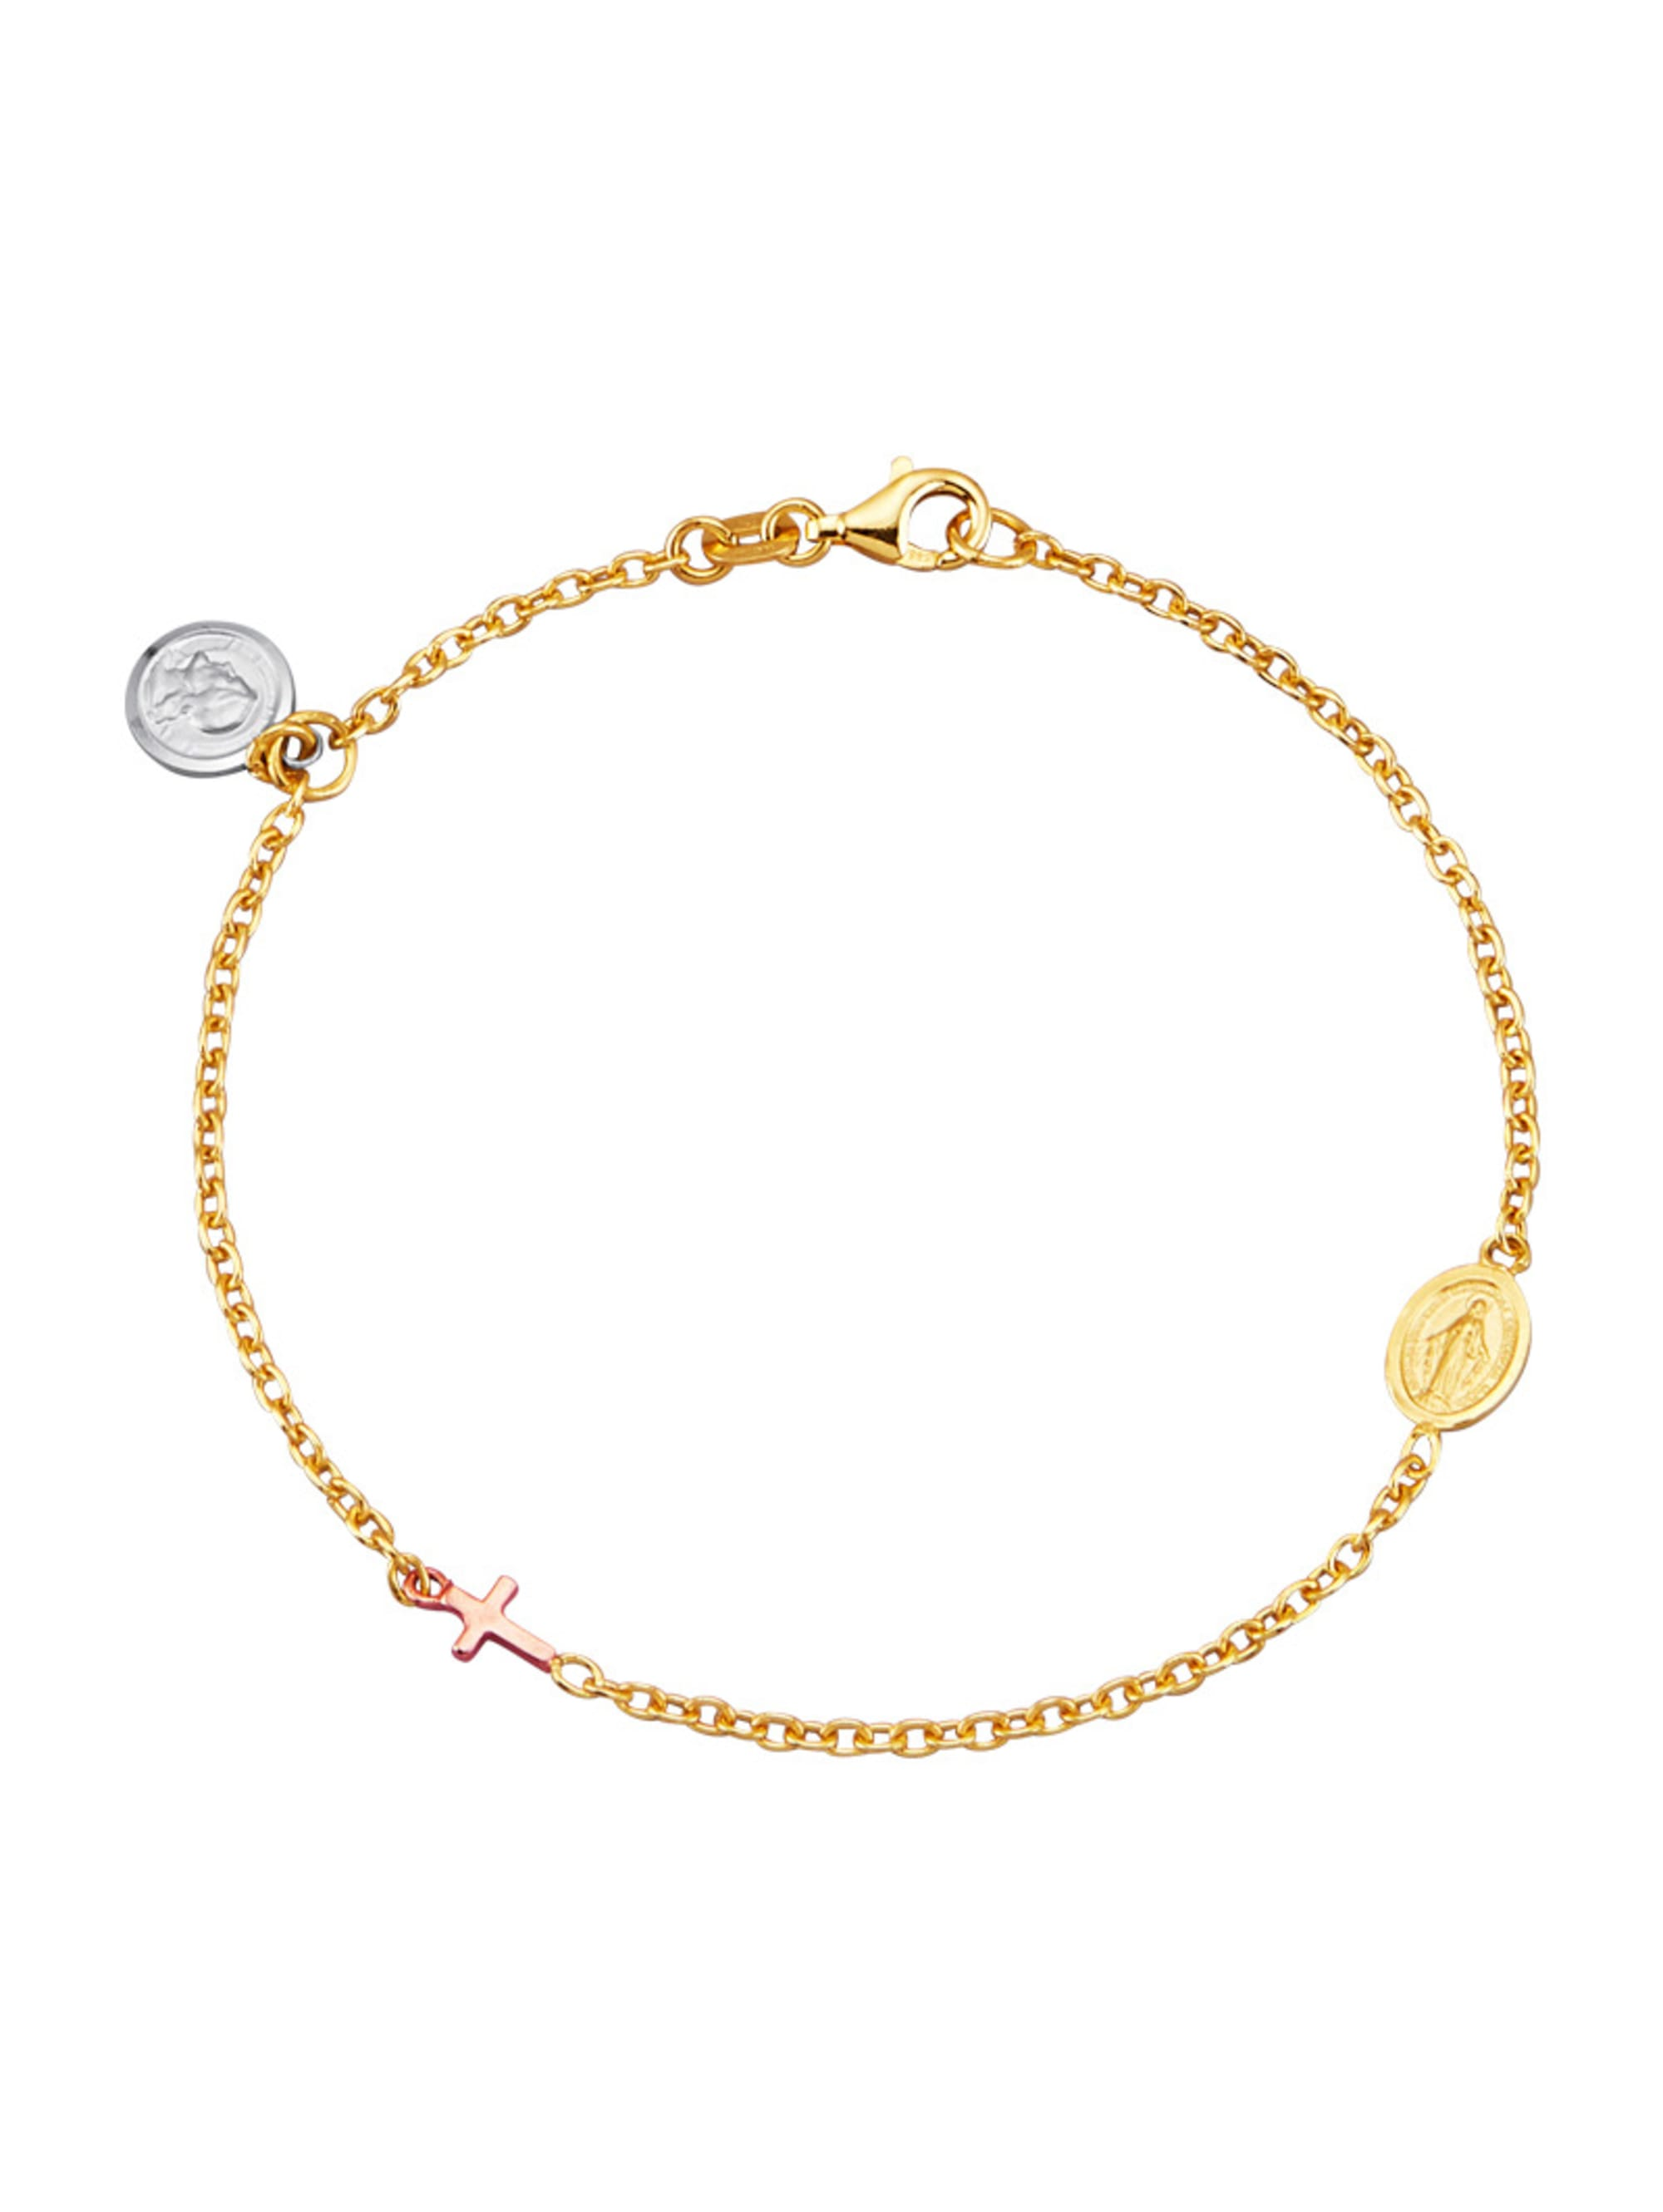 Armband in Gelbgold 375 mStkP